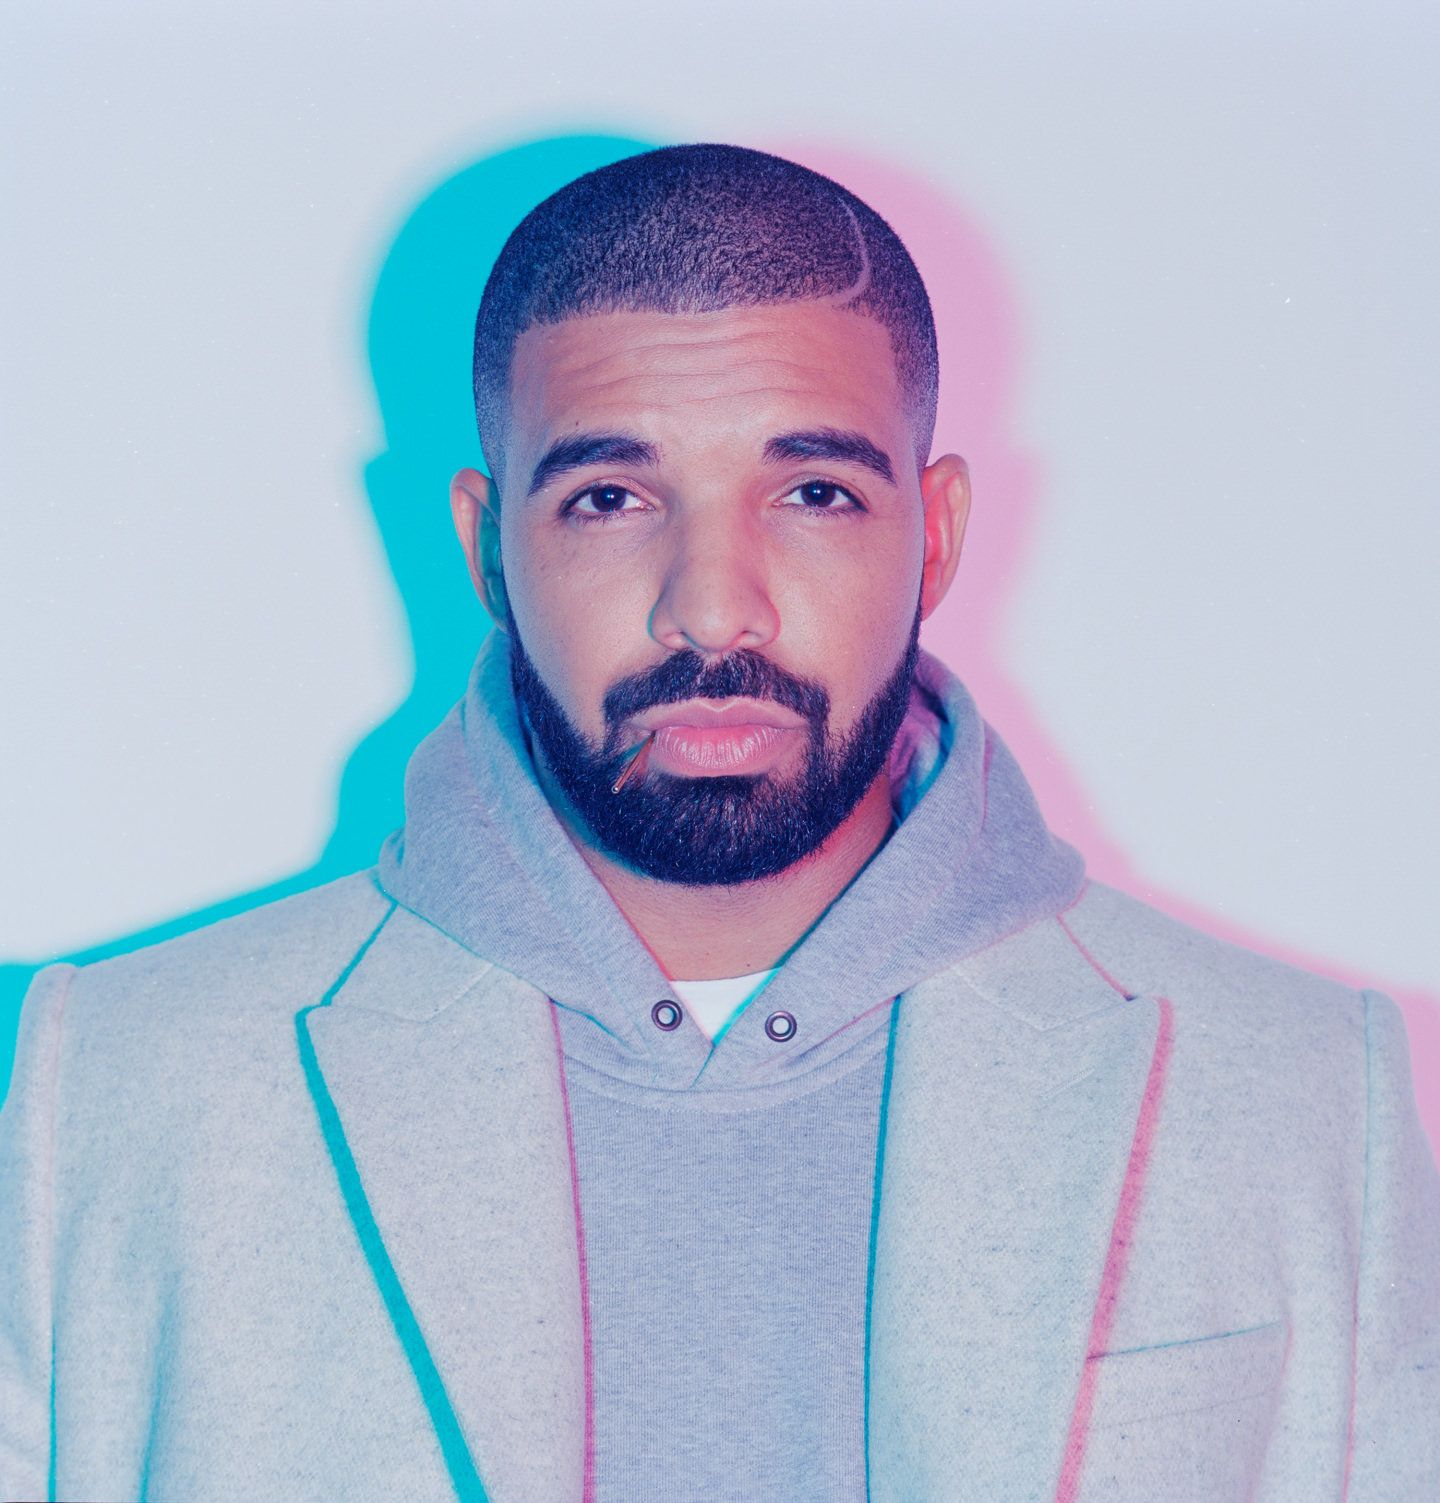 Rock in Rio 2019: O que esperar do 1º show de Drake no